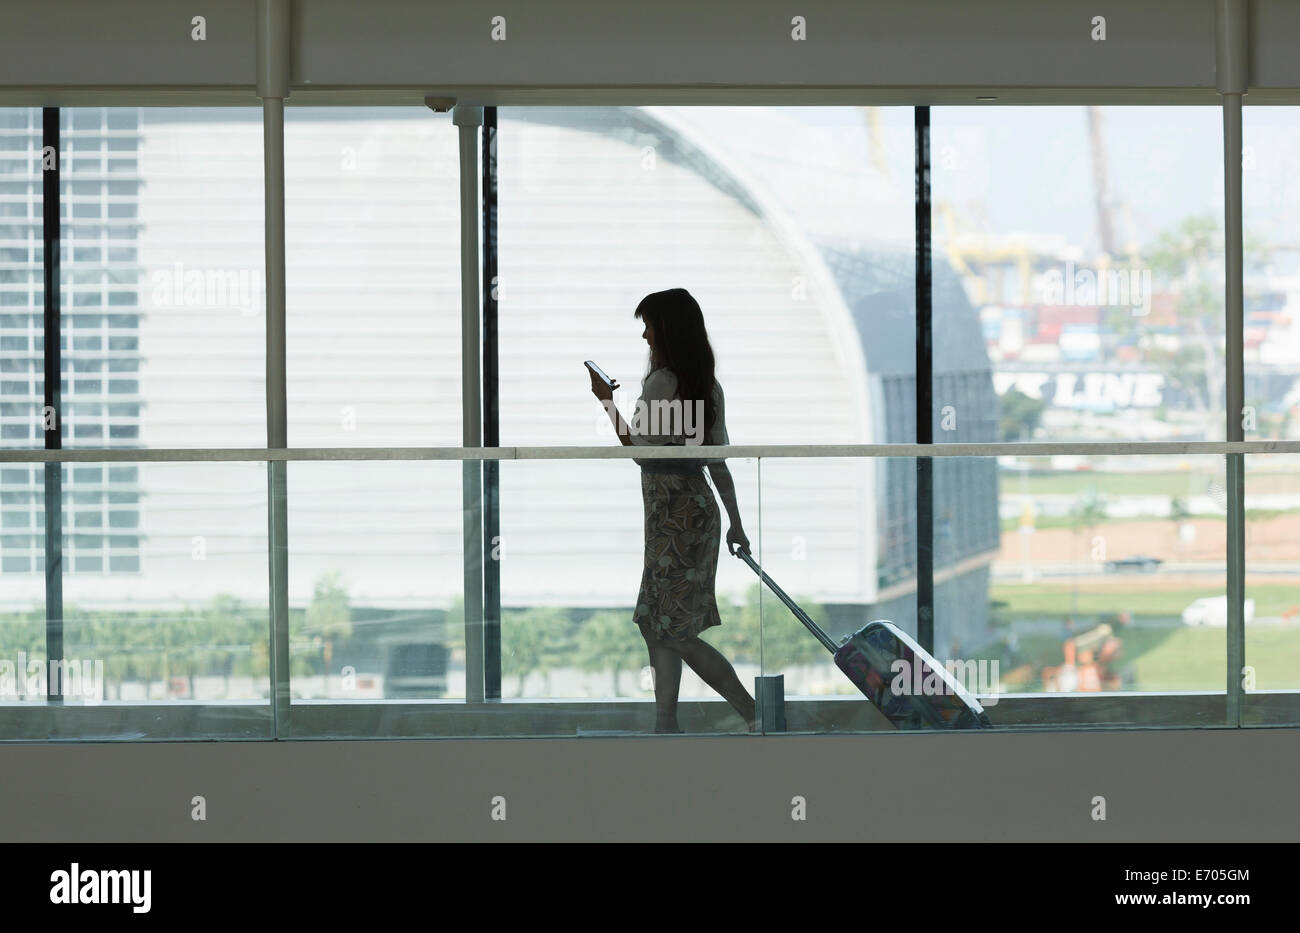 Young woman using smartphone and pulling suitcase in airport - Stock Image